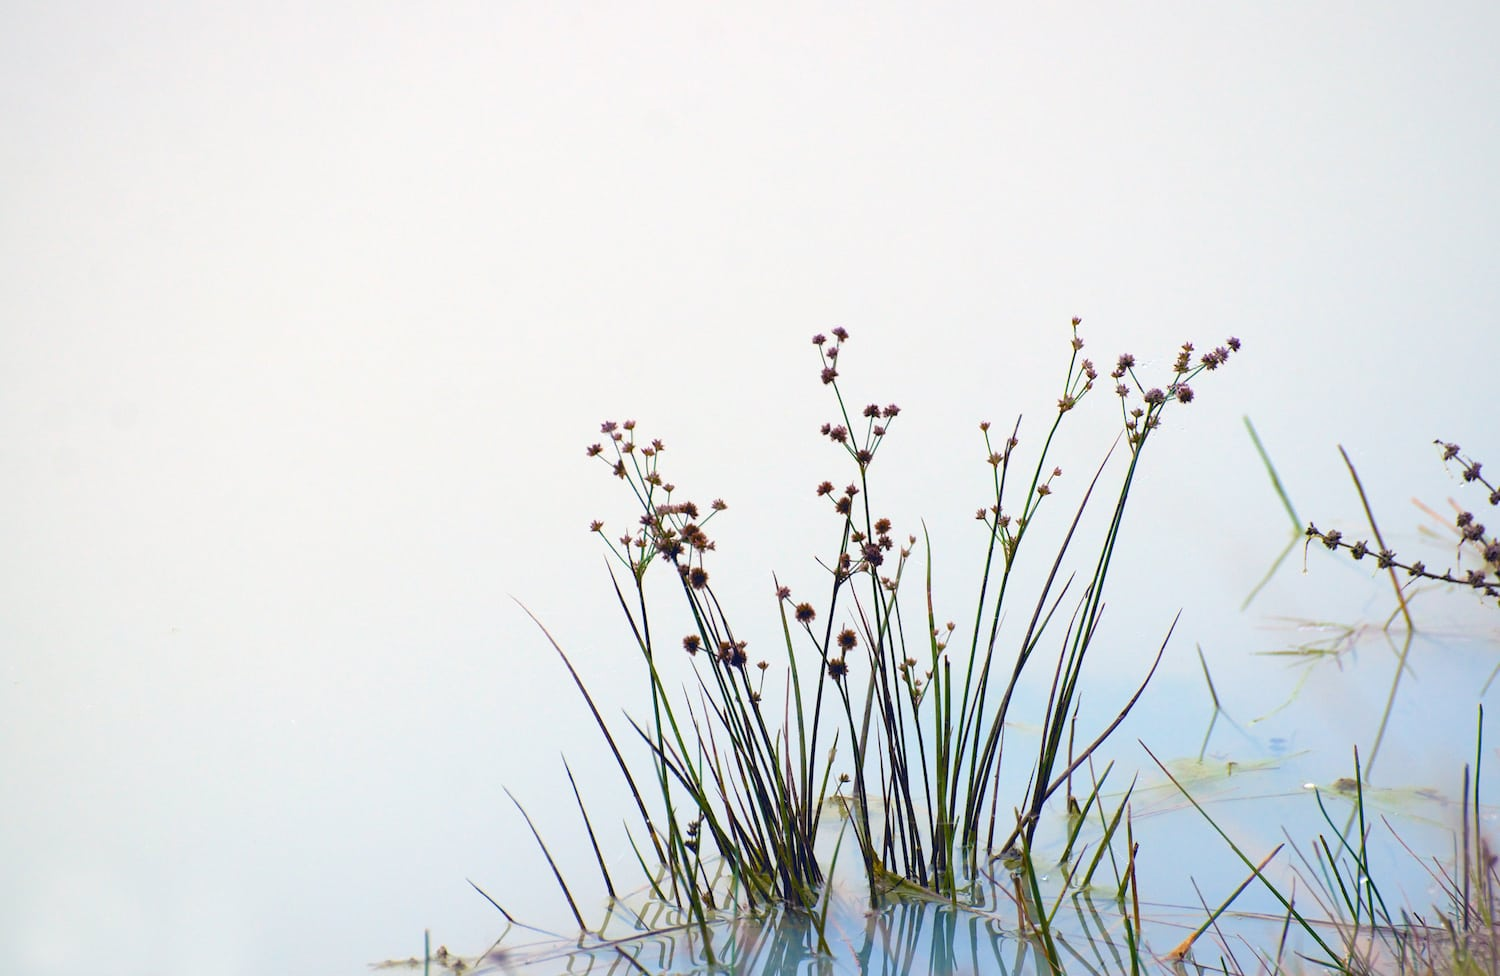 Weeds with Fog and Blue Water by Russell Tomlin, Dr. Dexter Gallery, Eugene, OR